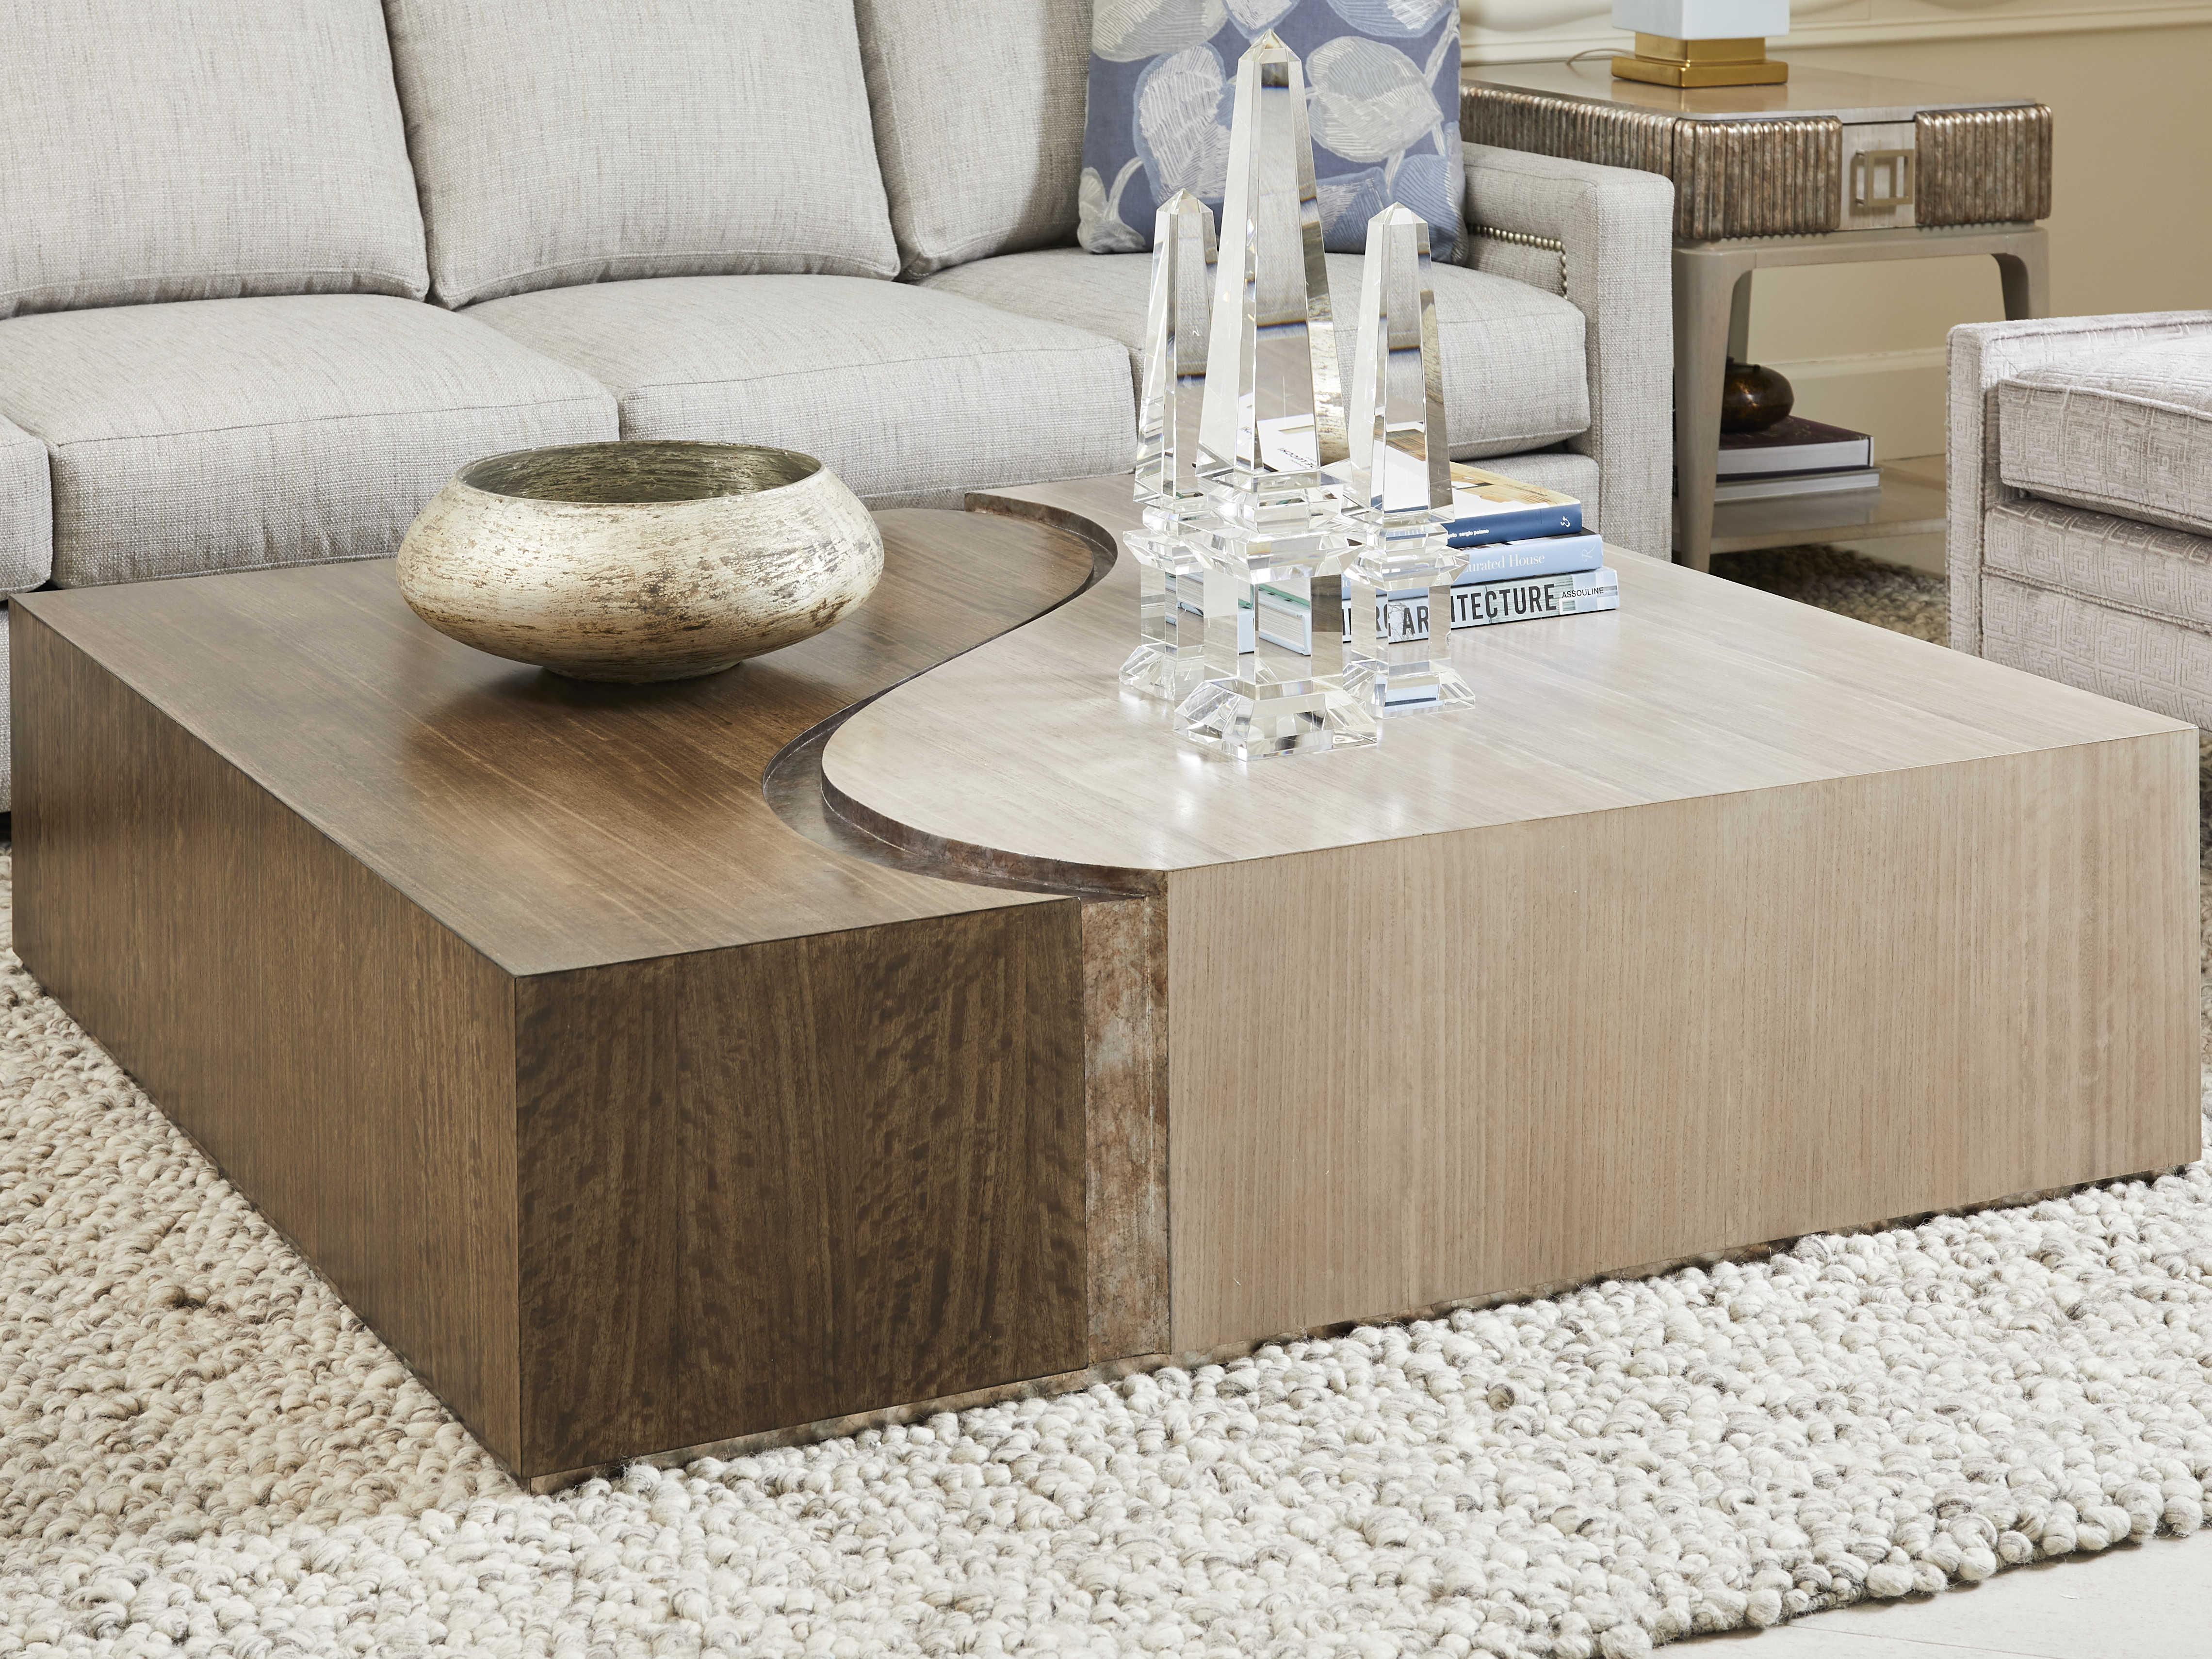 Stanley Furniture Revival 54 Wide Square Coffee Table